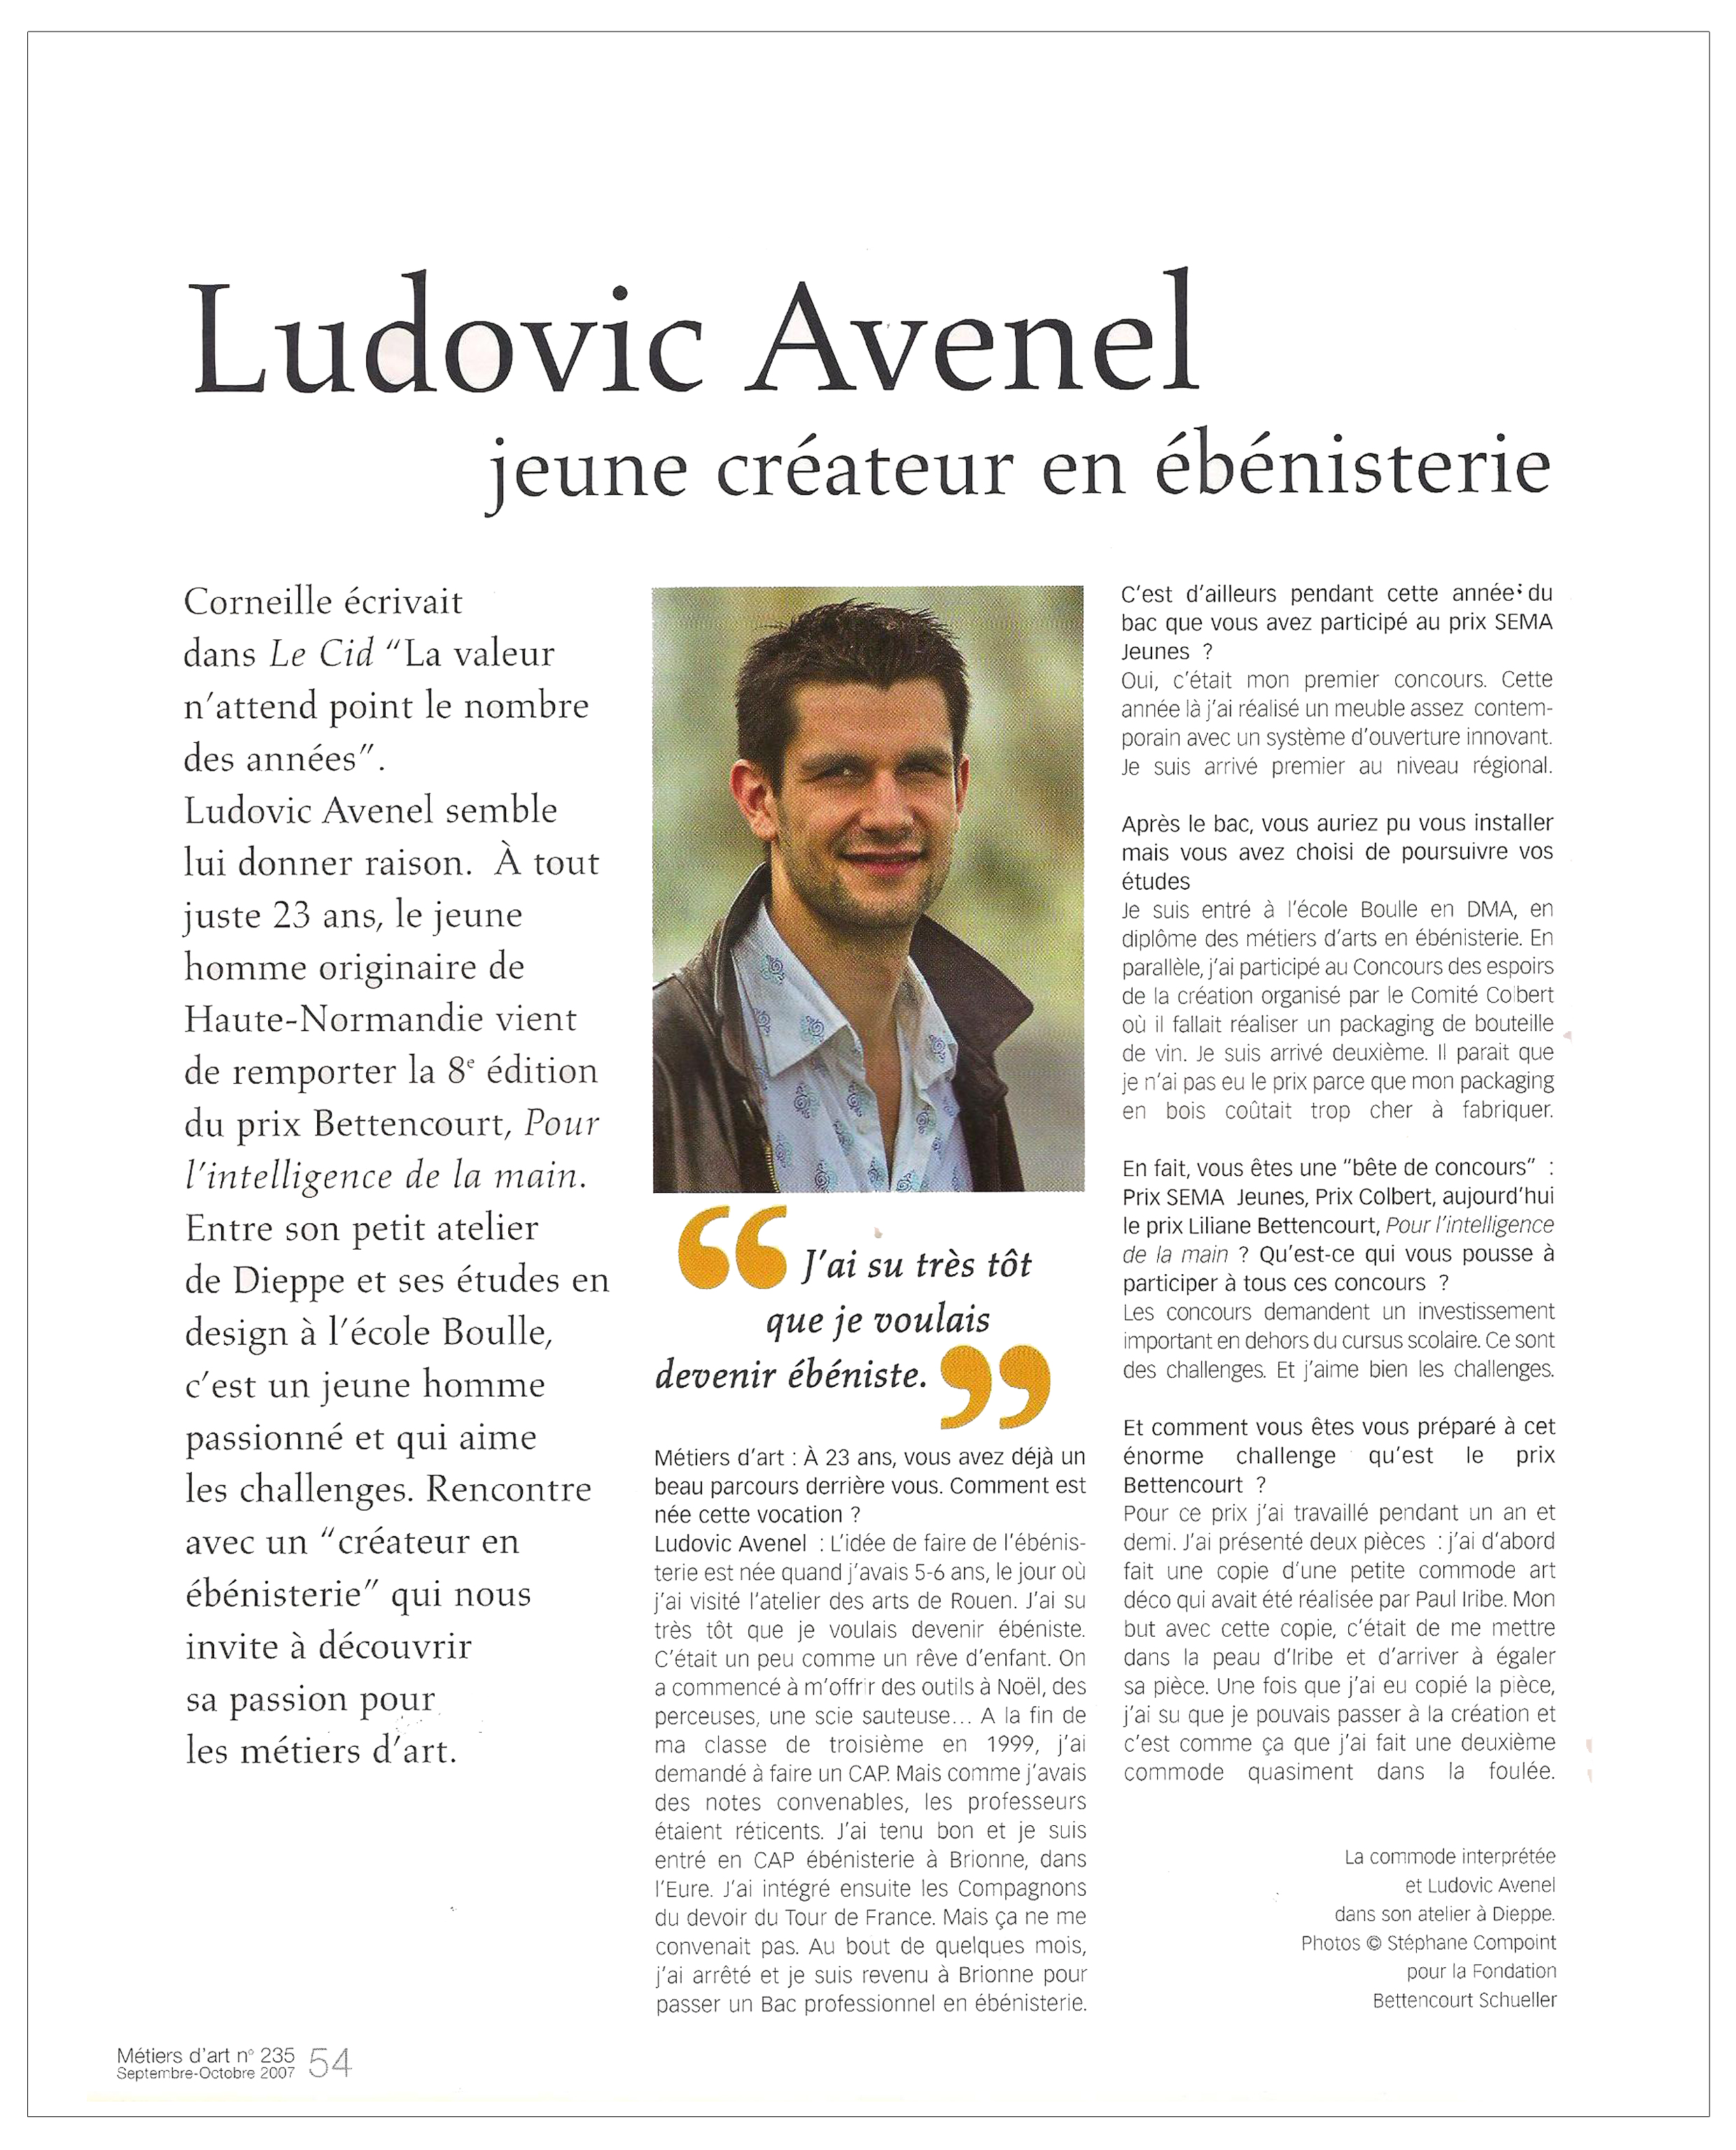 Ludovic AVENEL cabinet maker Paris - Ludovic_Avenel_press_métiers d'art_ebeniste_créateur_design_sur mesure_2